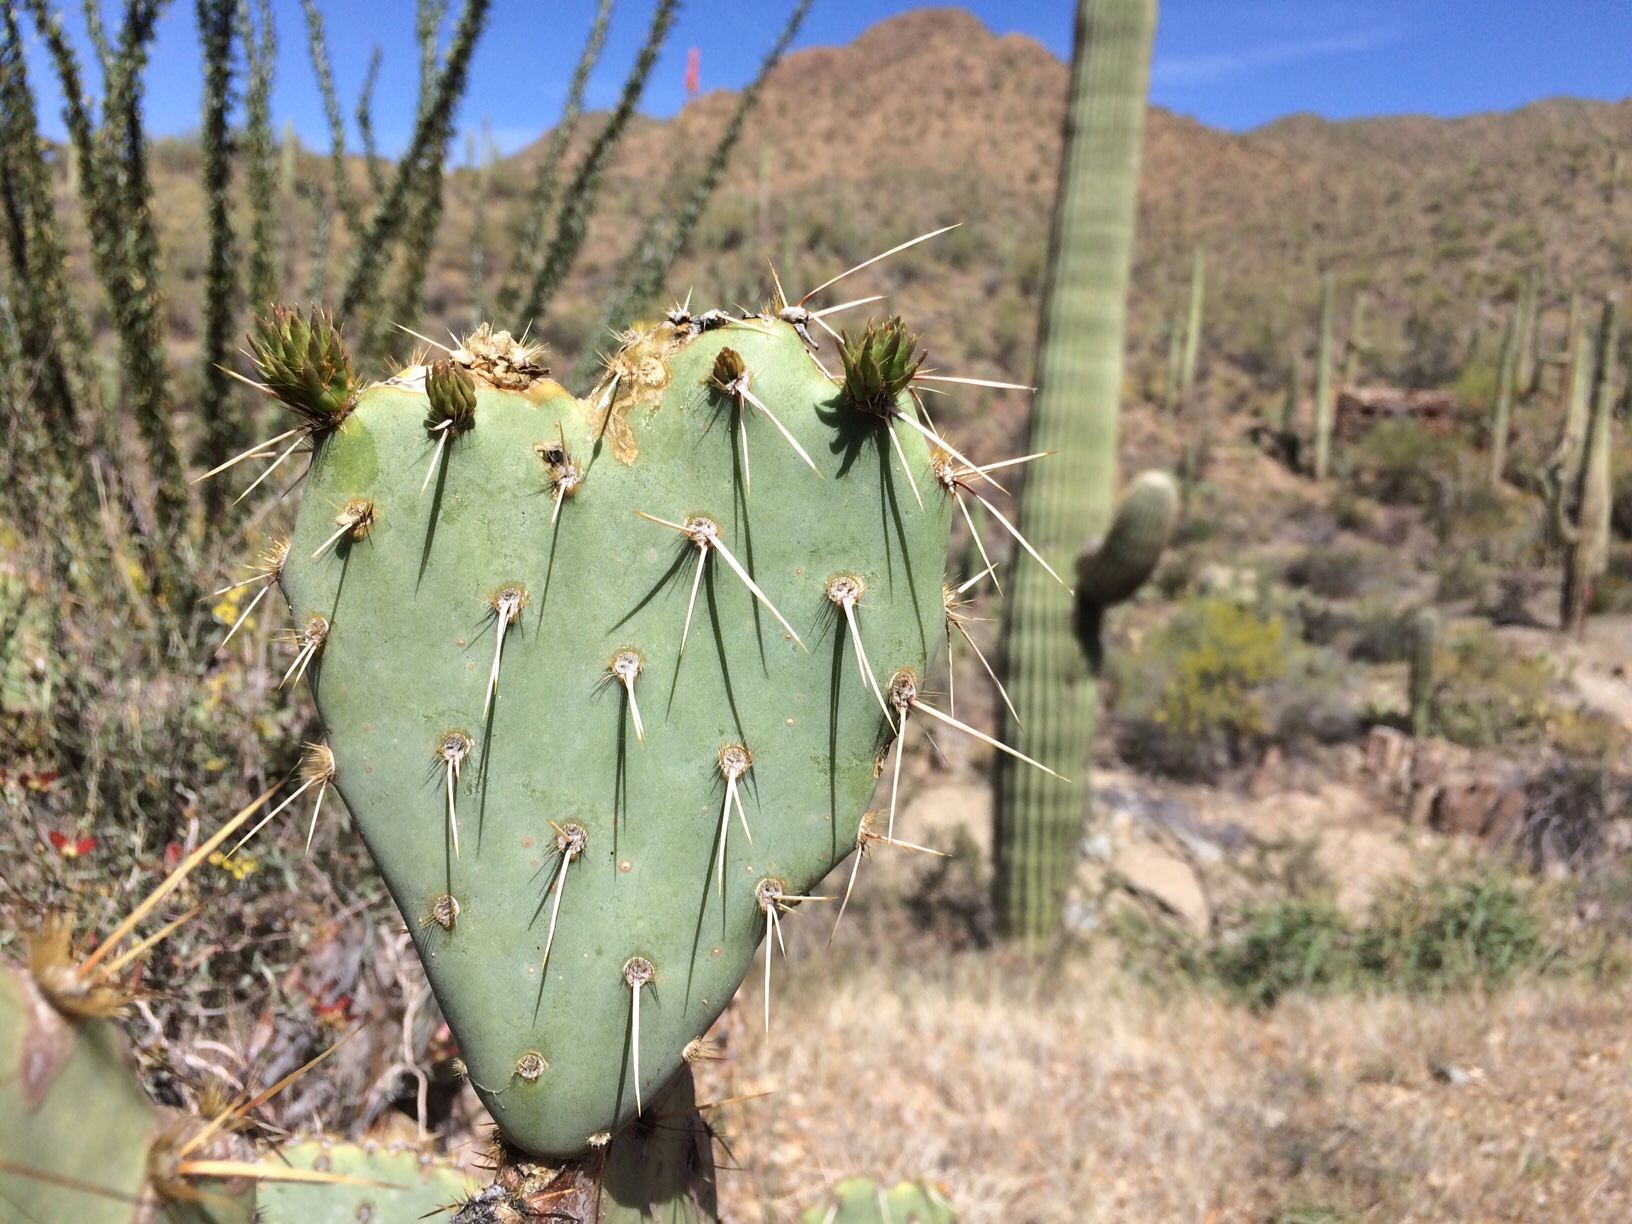 Cactus shaped like a heart